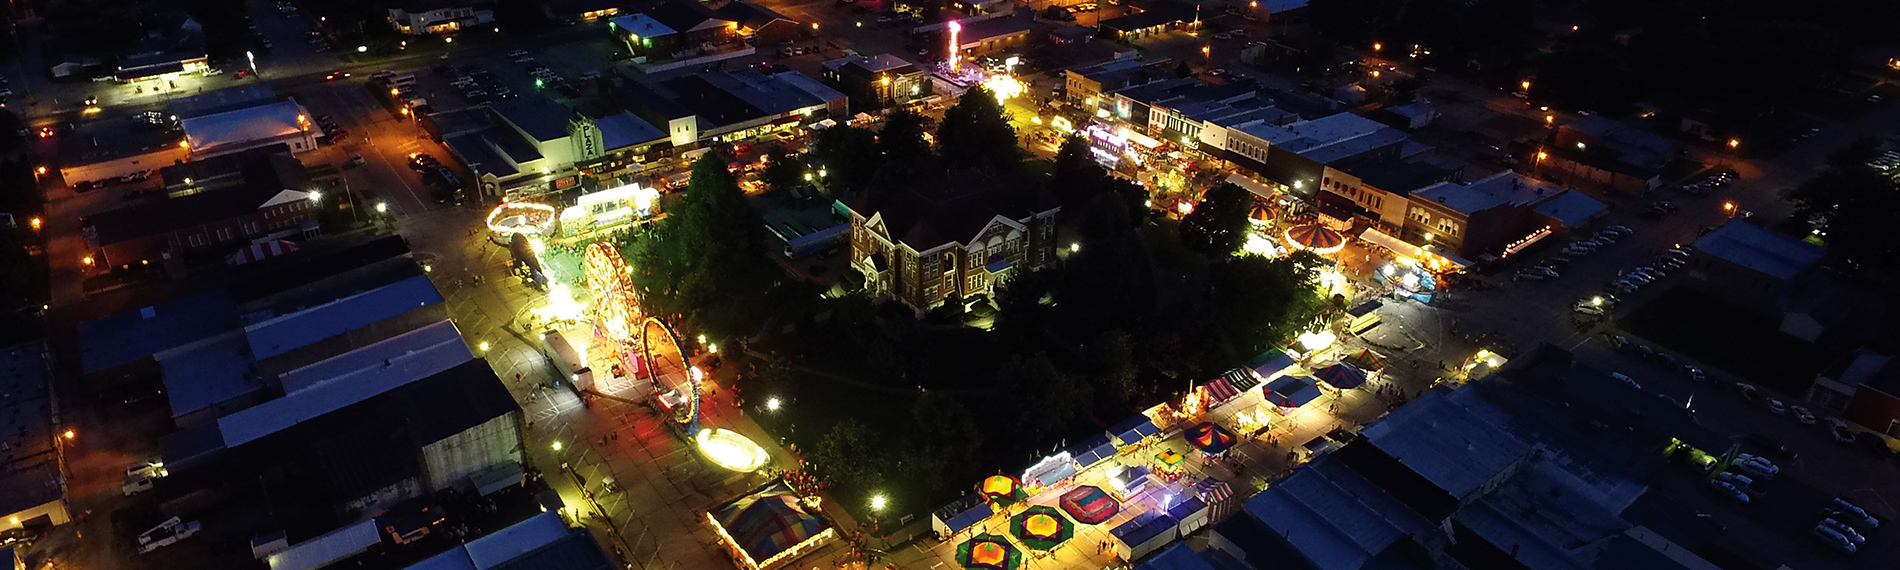 Lamar Free Fair - Missouri's Largest Free Fair